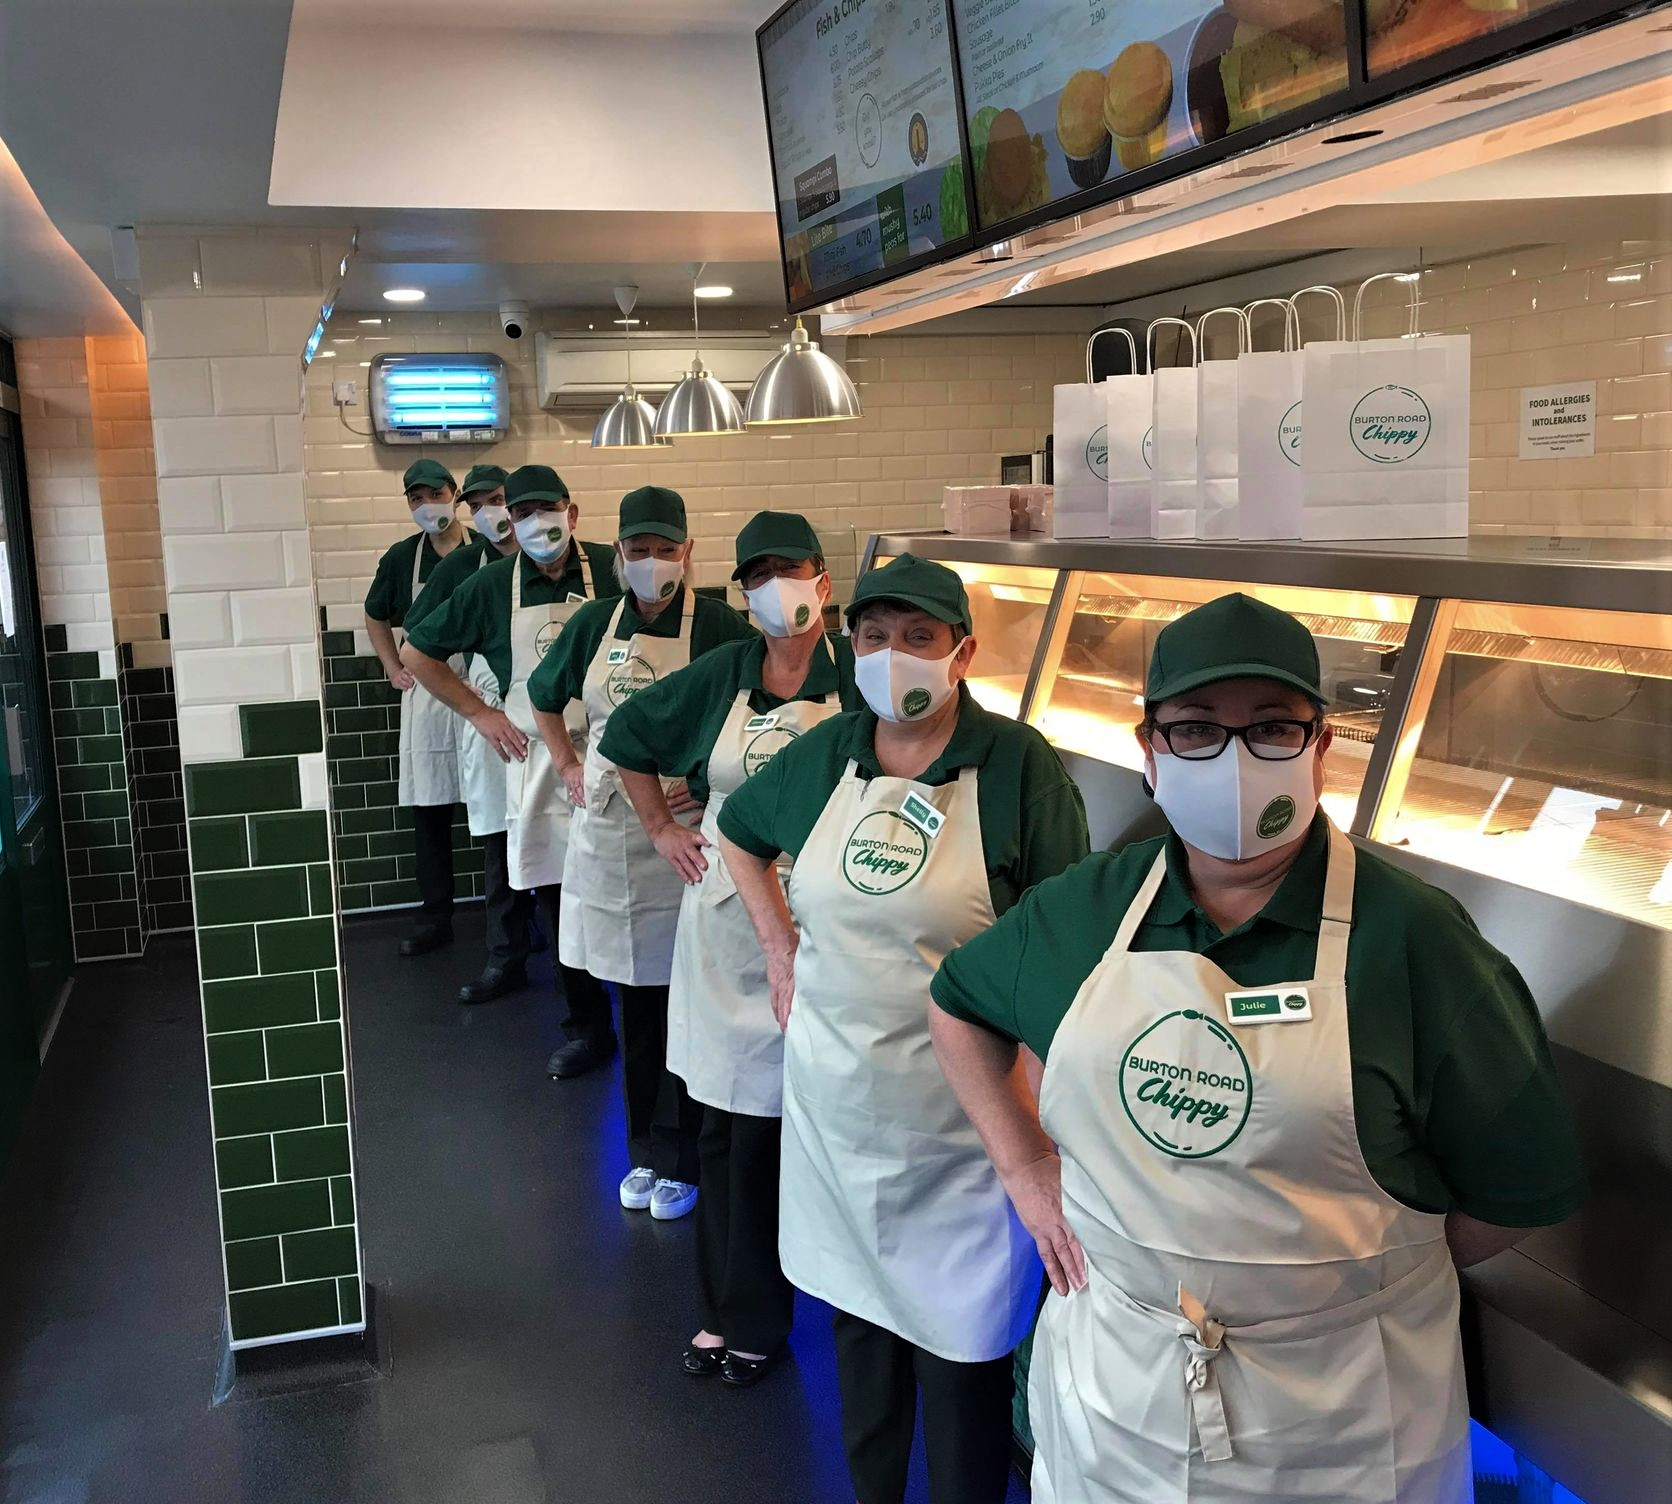 Staff at Burton Road Chippy in Lincoln.